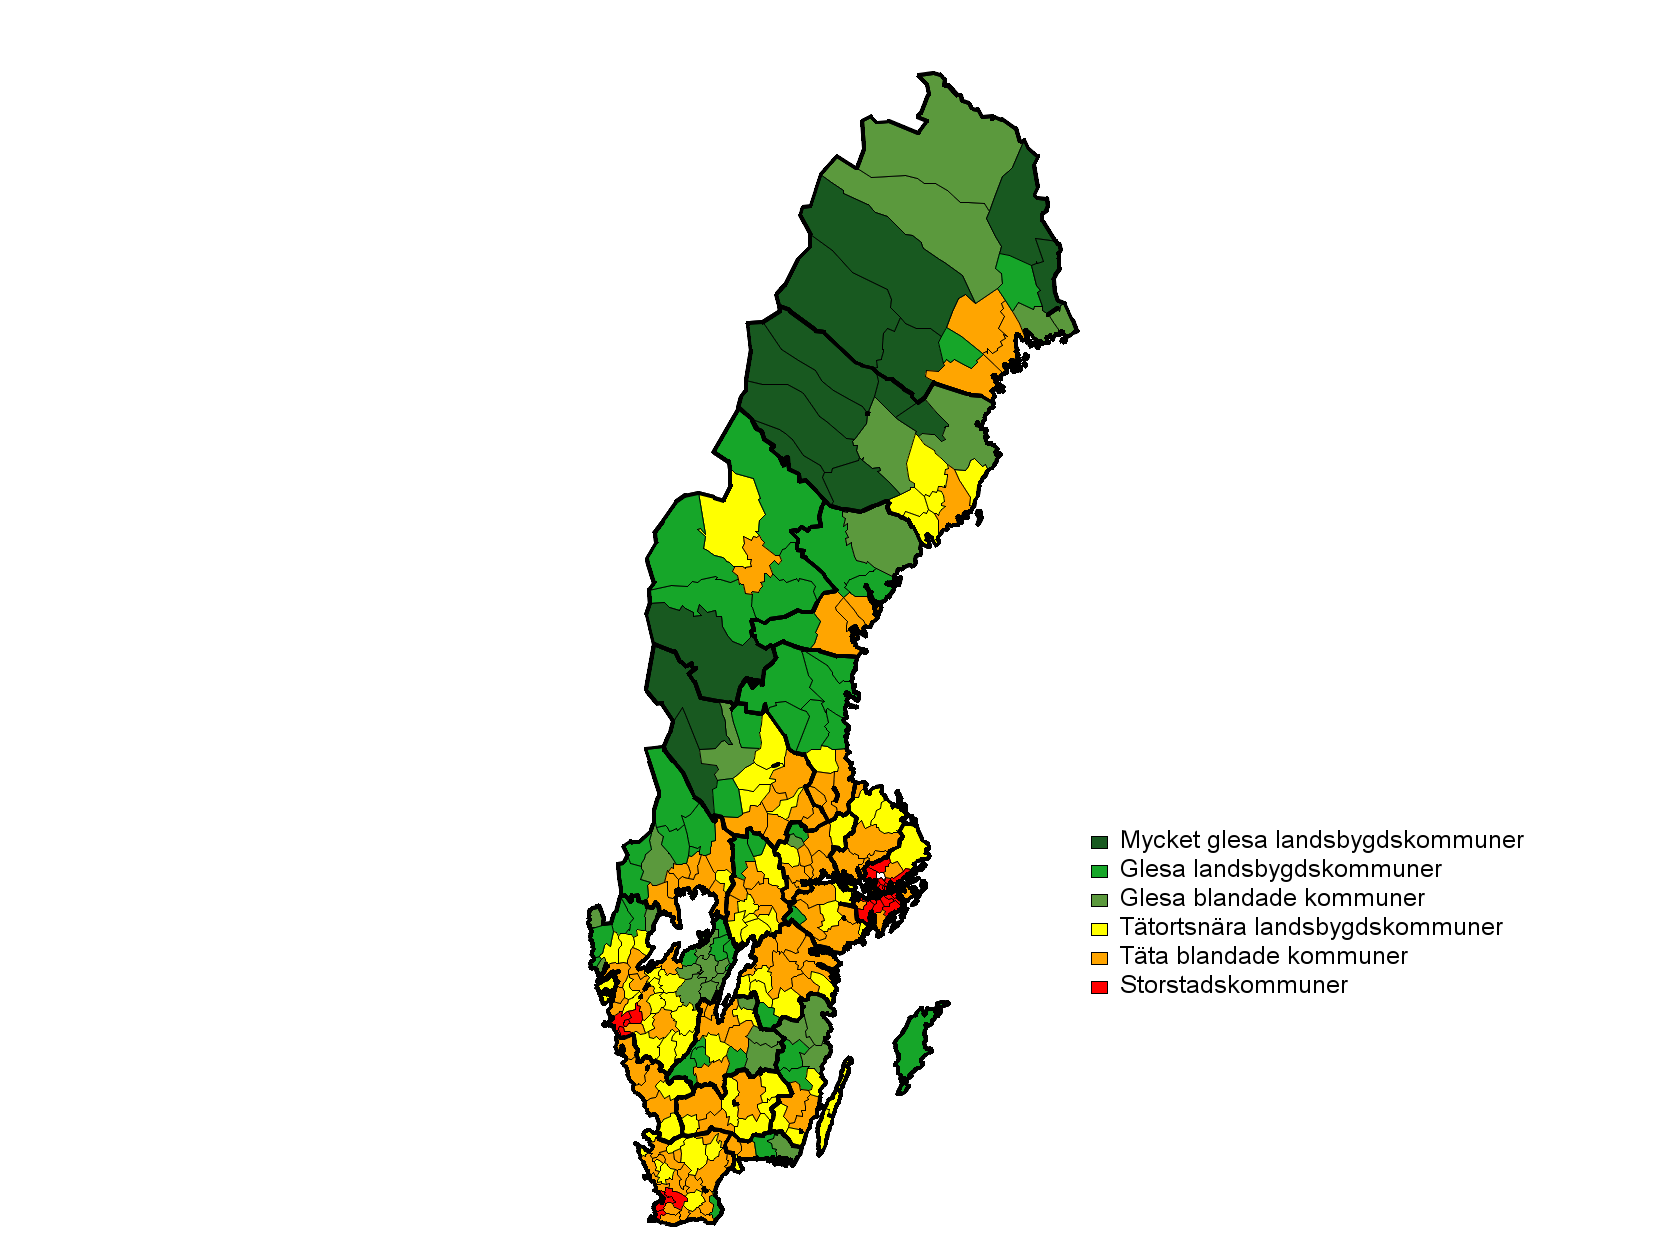 Choropleth map of kodsexgradig